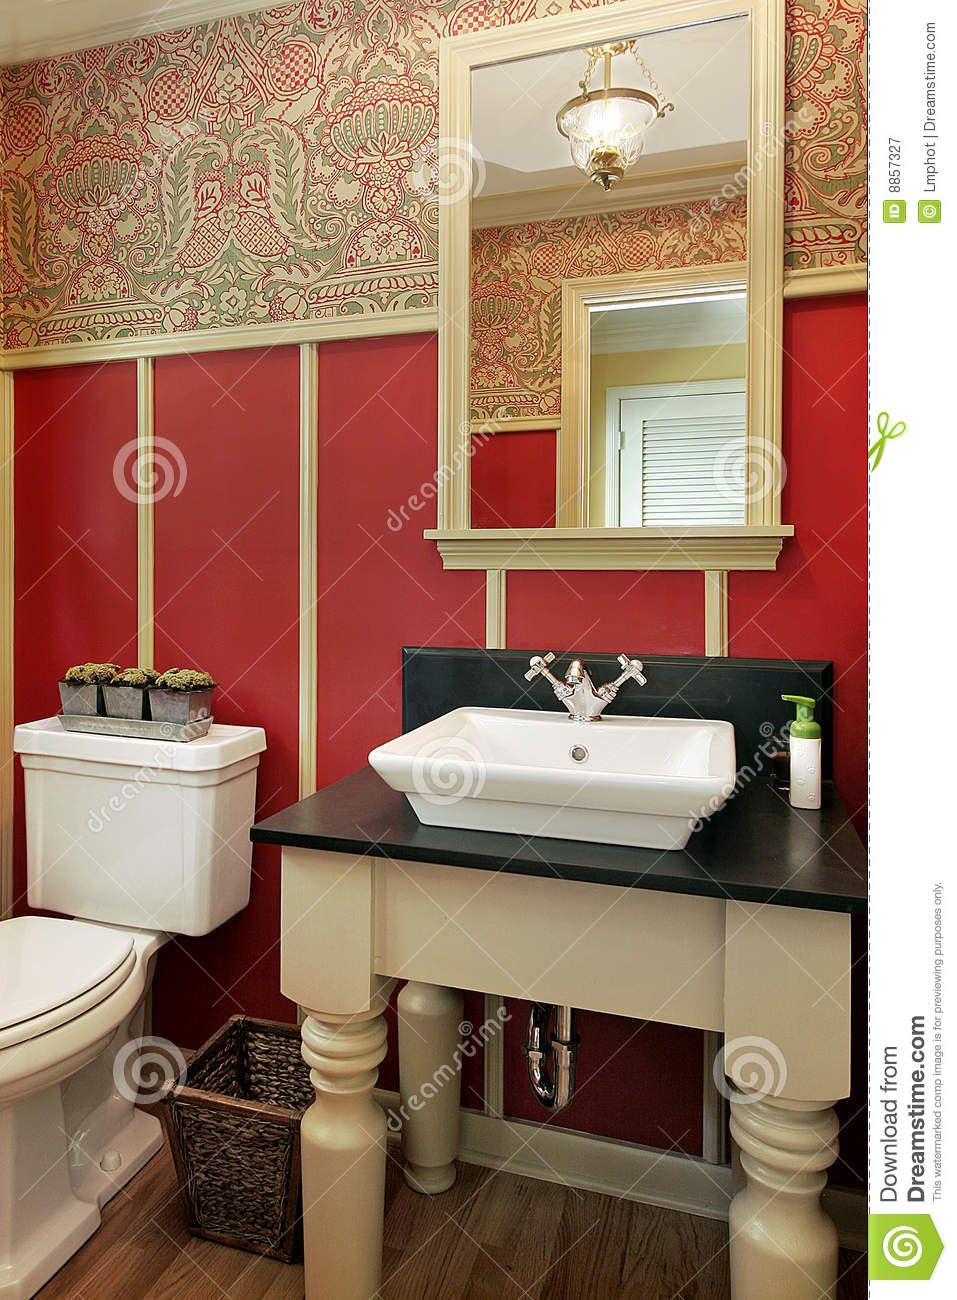 Powder Room In Luxury Home Stock Image Image Of Master